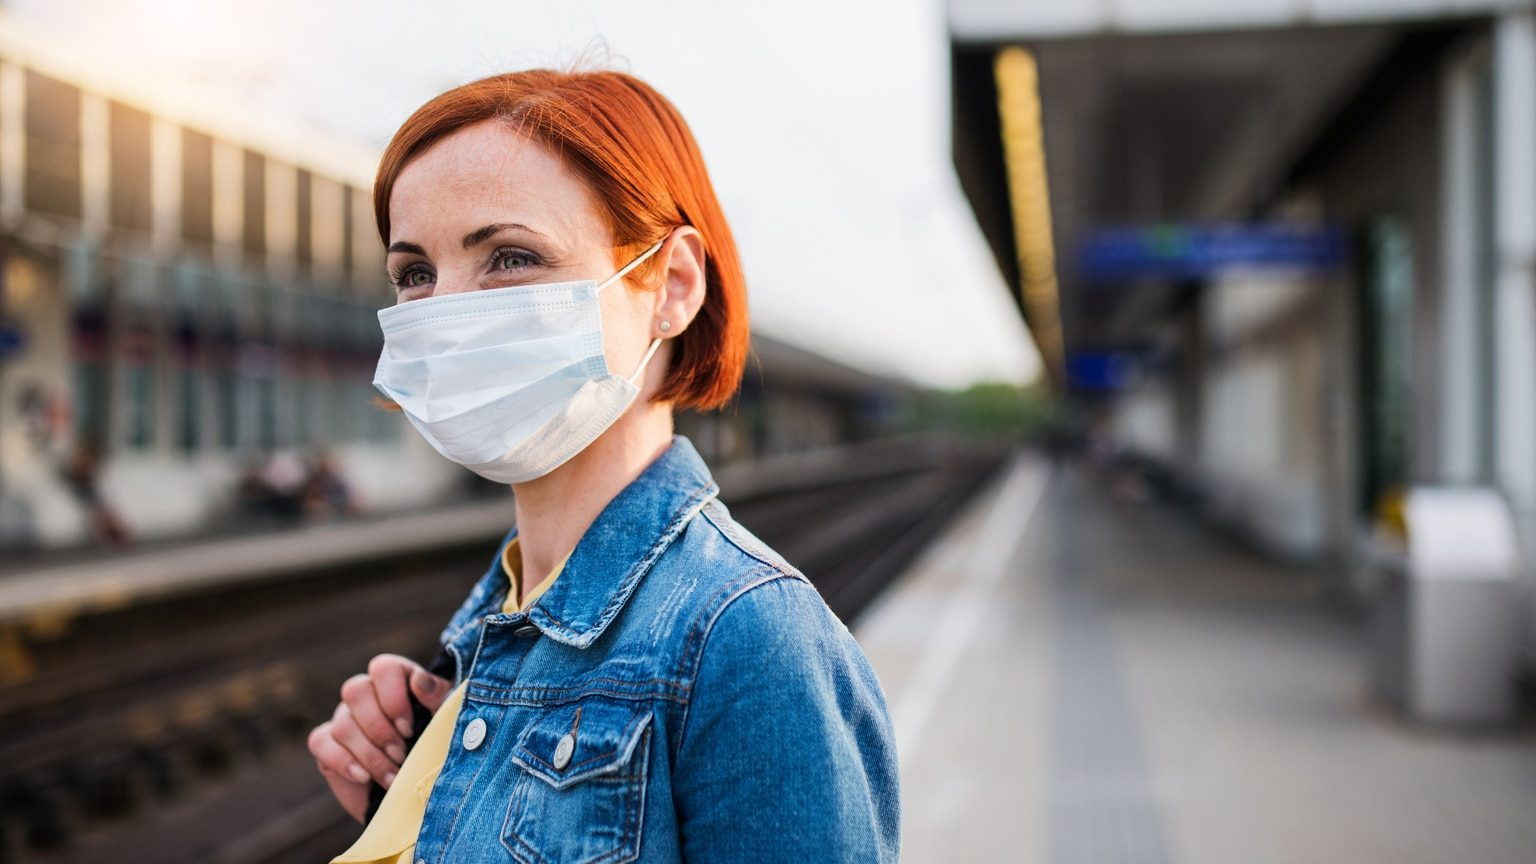 Woman at train station wearing protective face mask